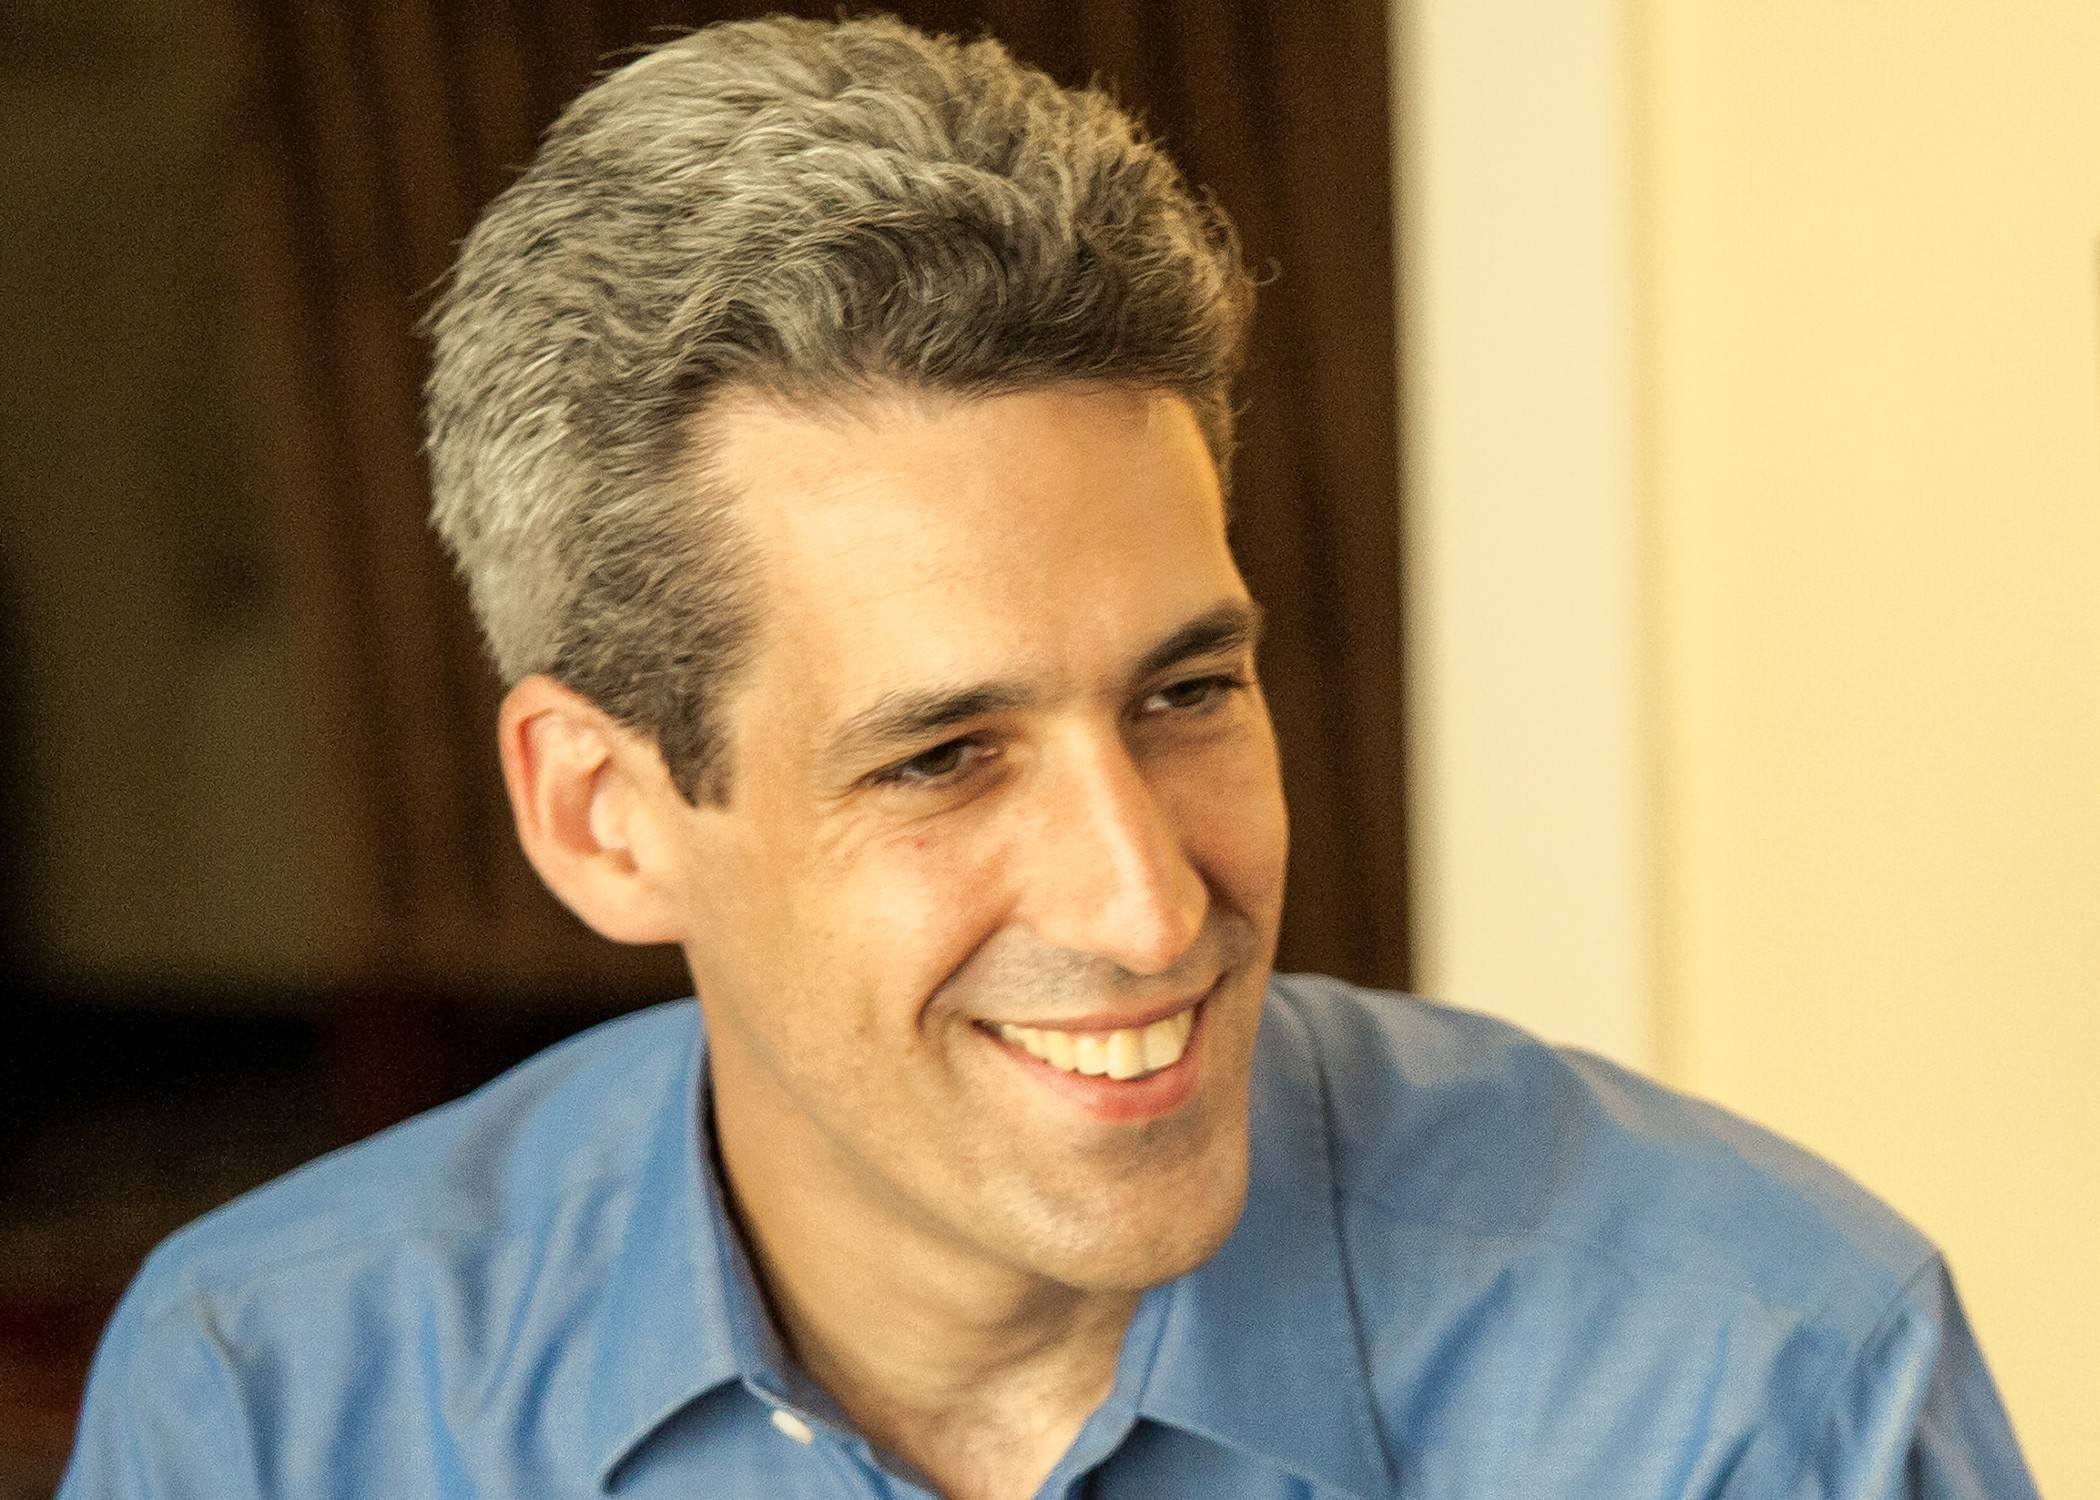 Daniel Biss: Let's decide who government works for